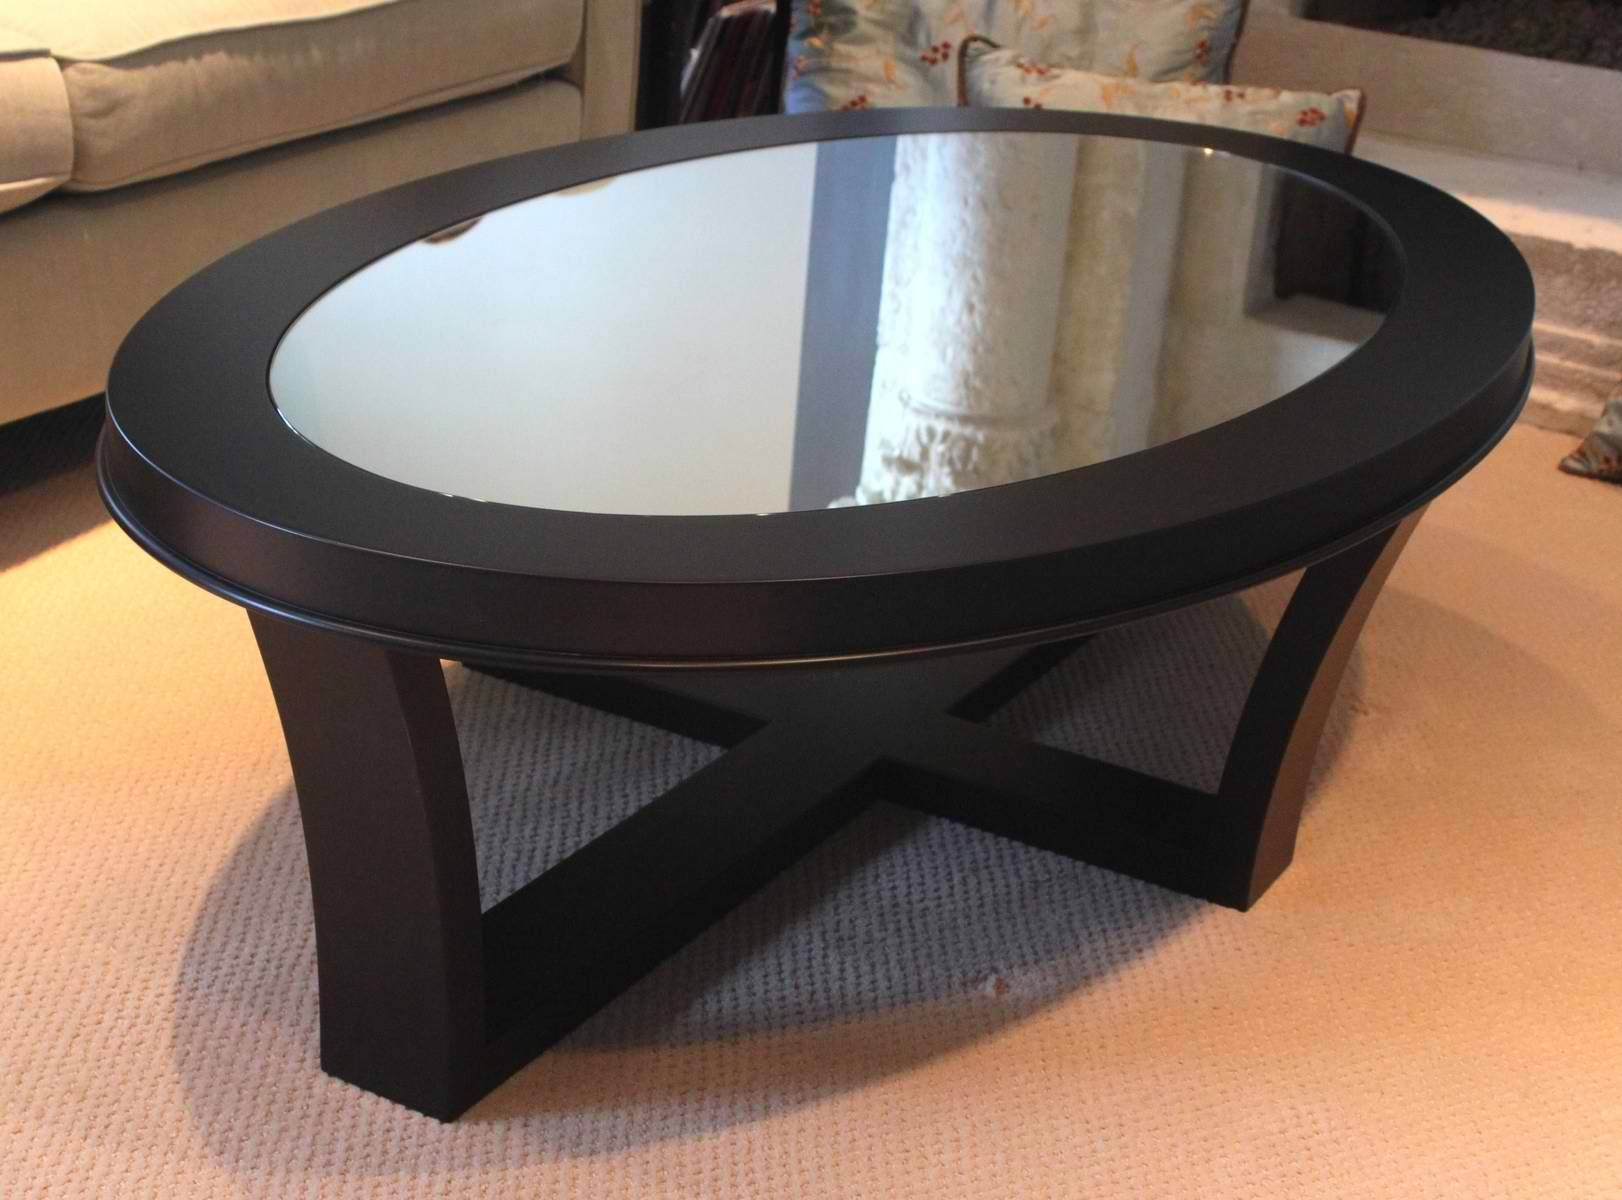 Coffee Tables Ideas: Awesome Black Oval Coffee Table Set Oval Wood throughout Black Oval Coffee Table (Image 9 of 30)